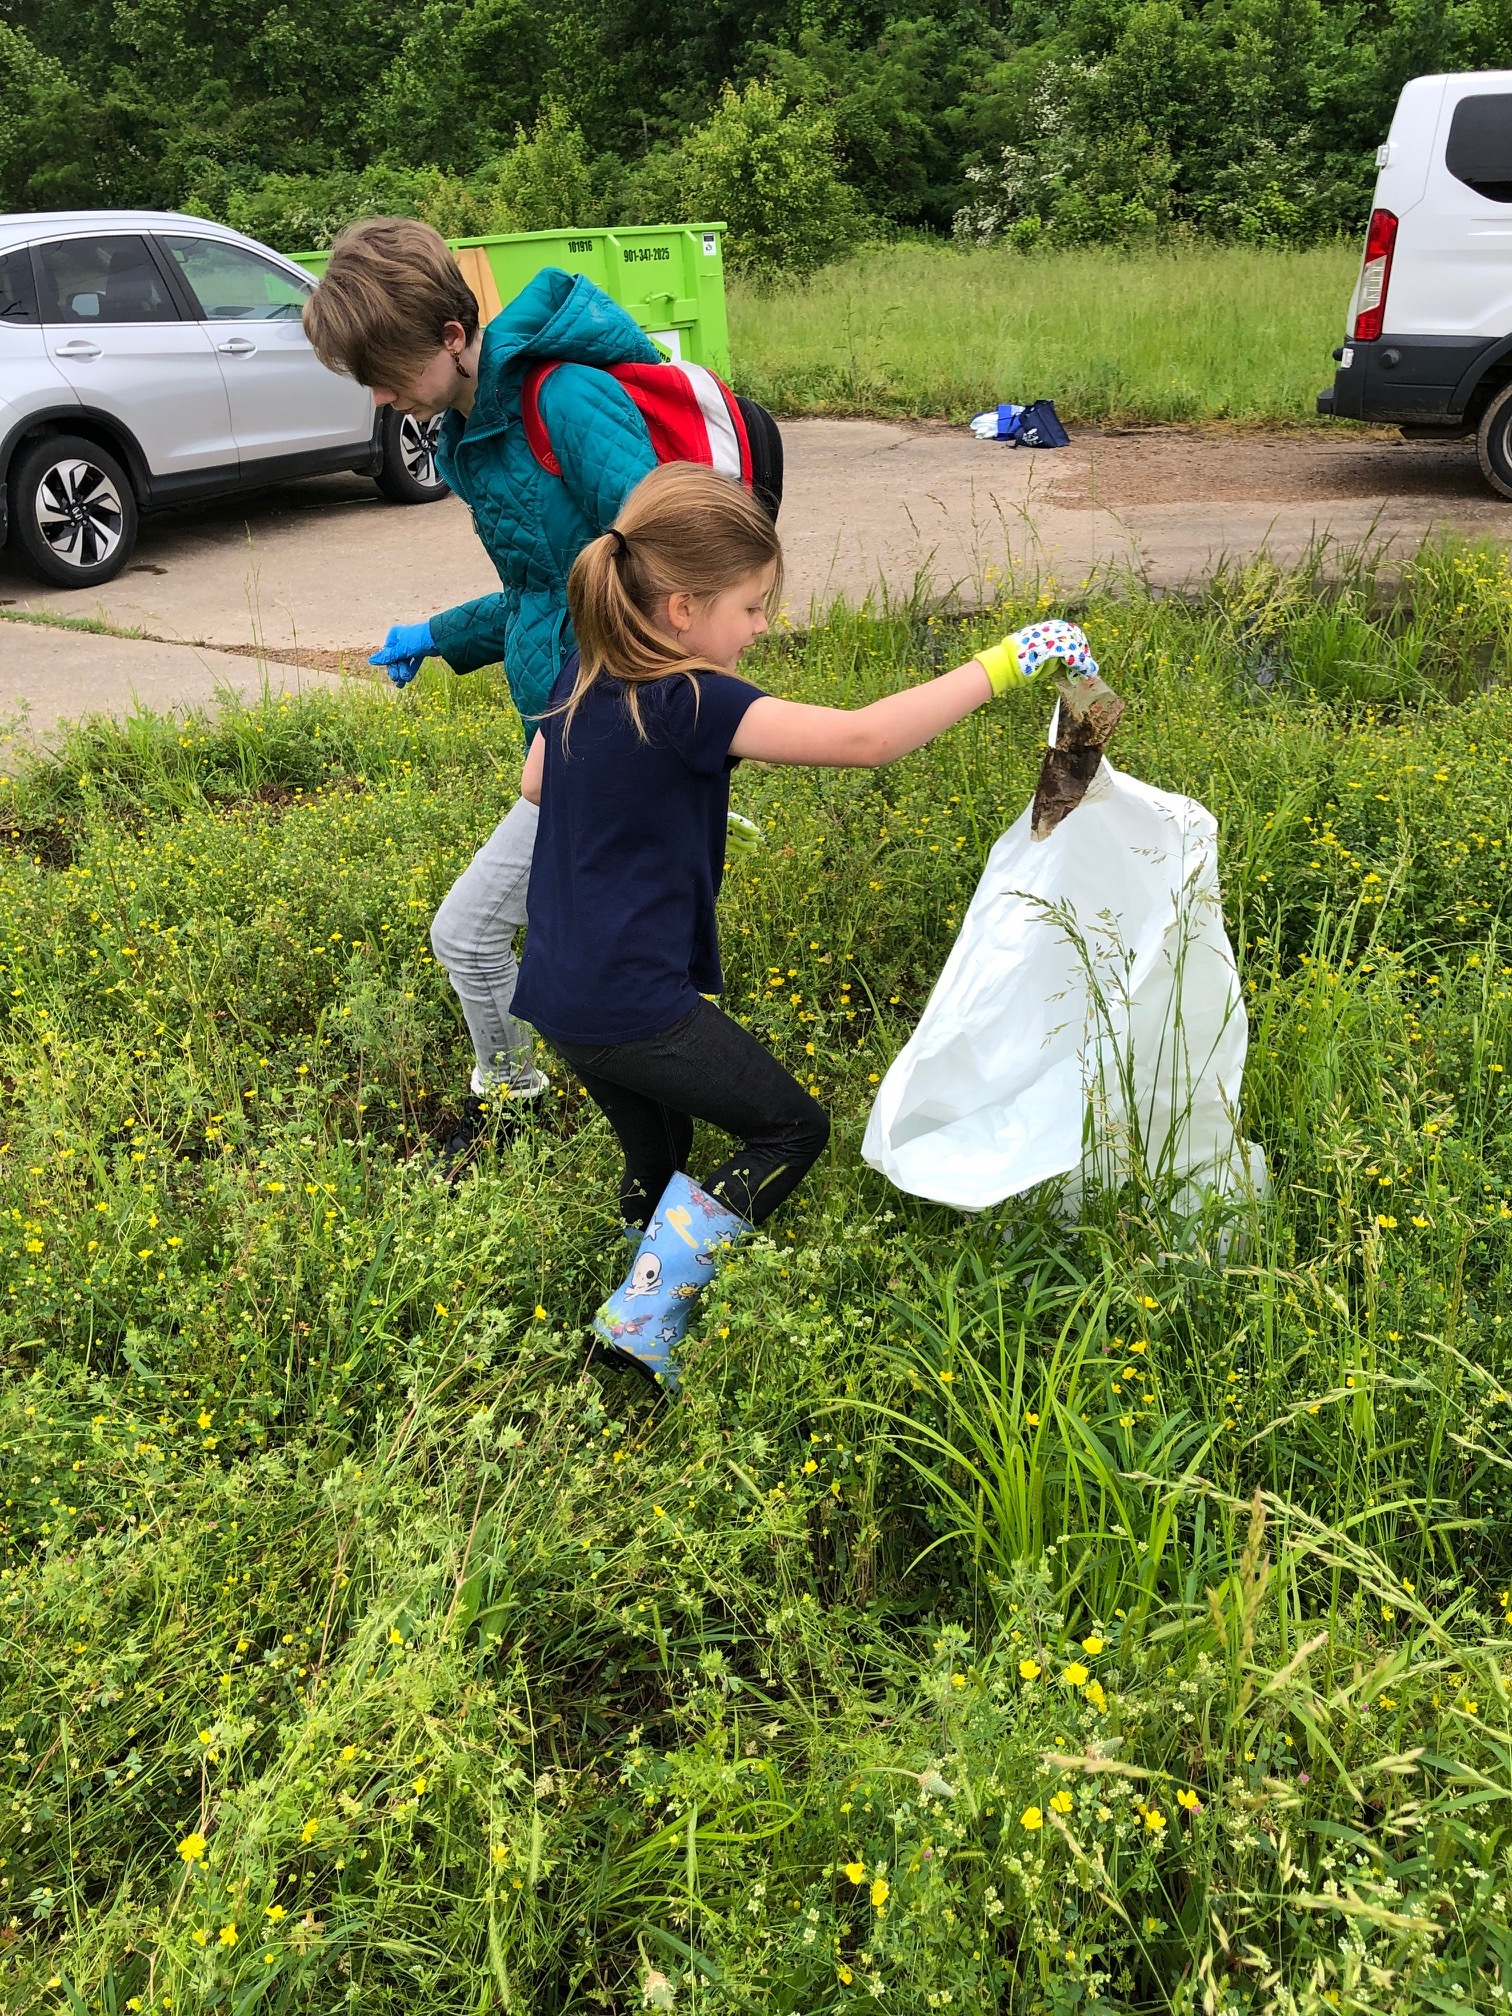 5.4.19 Nonconnah Creek Conservancy clean-up and trail blazing